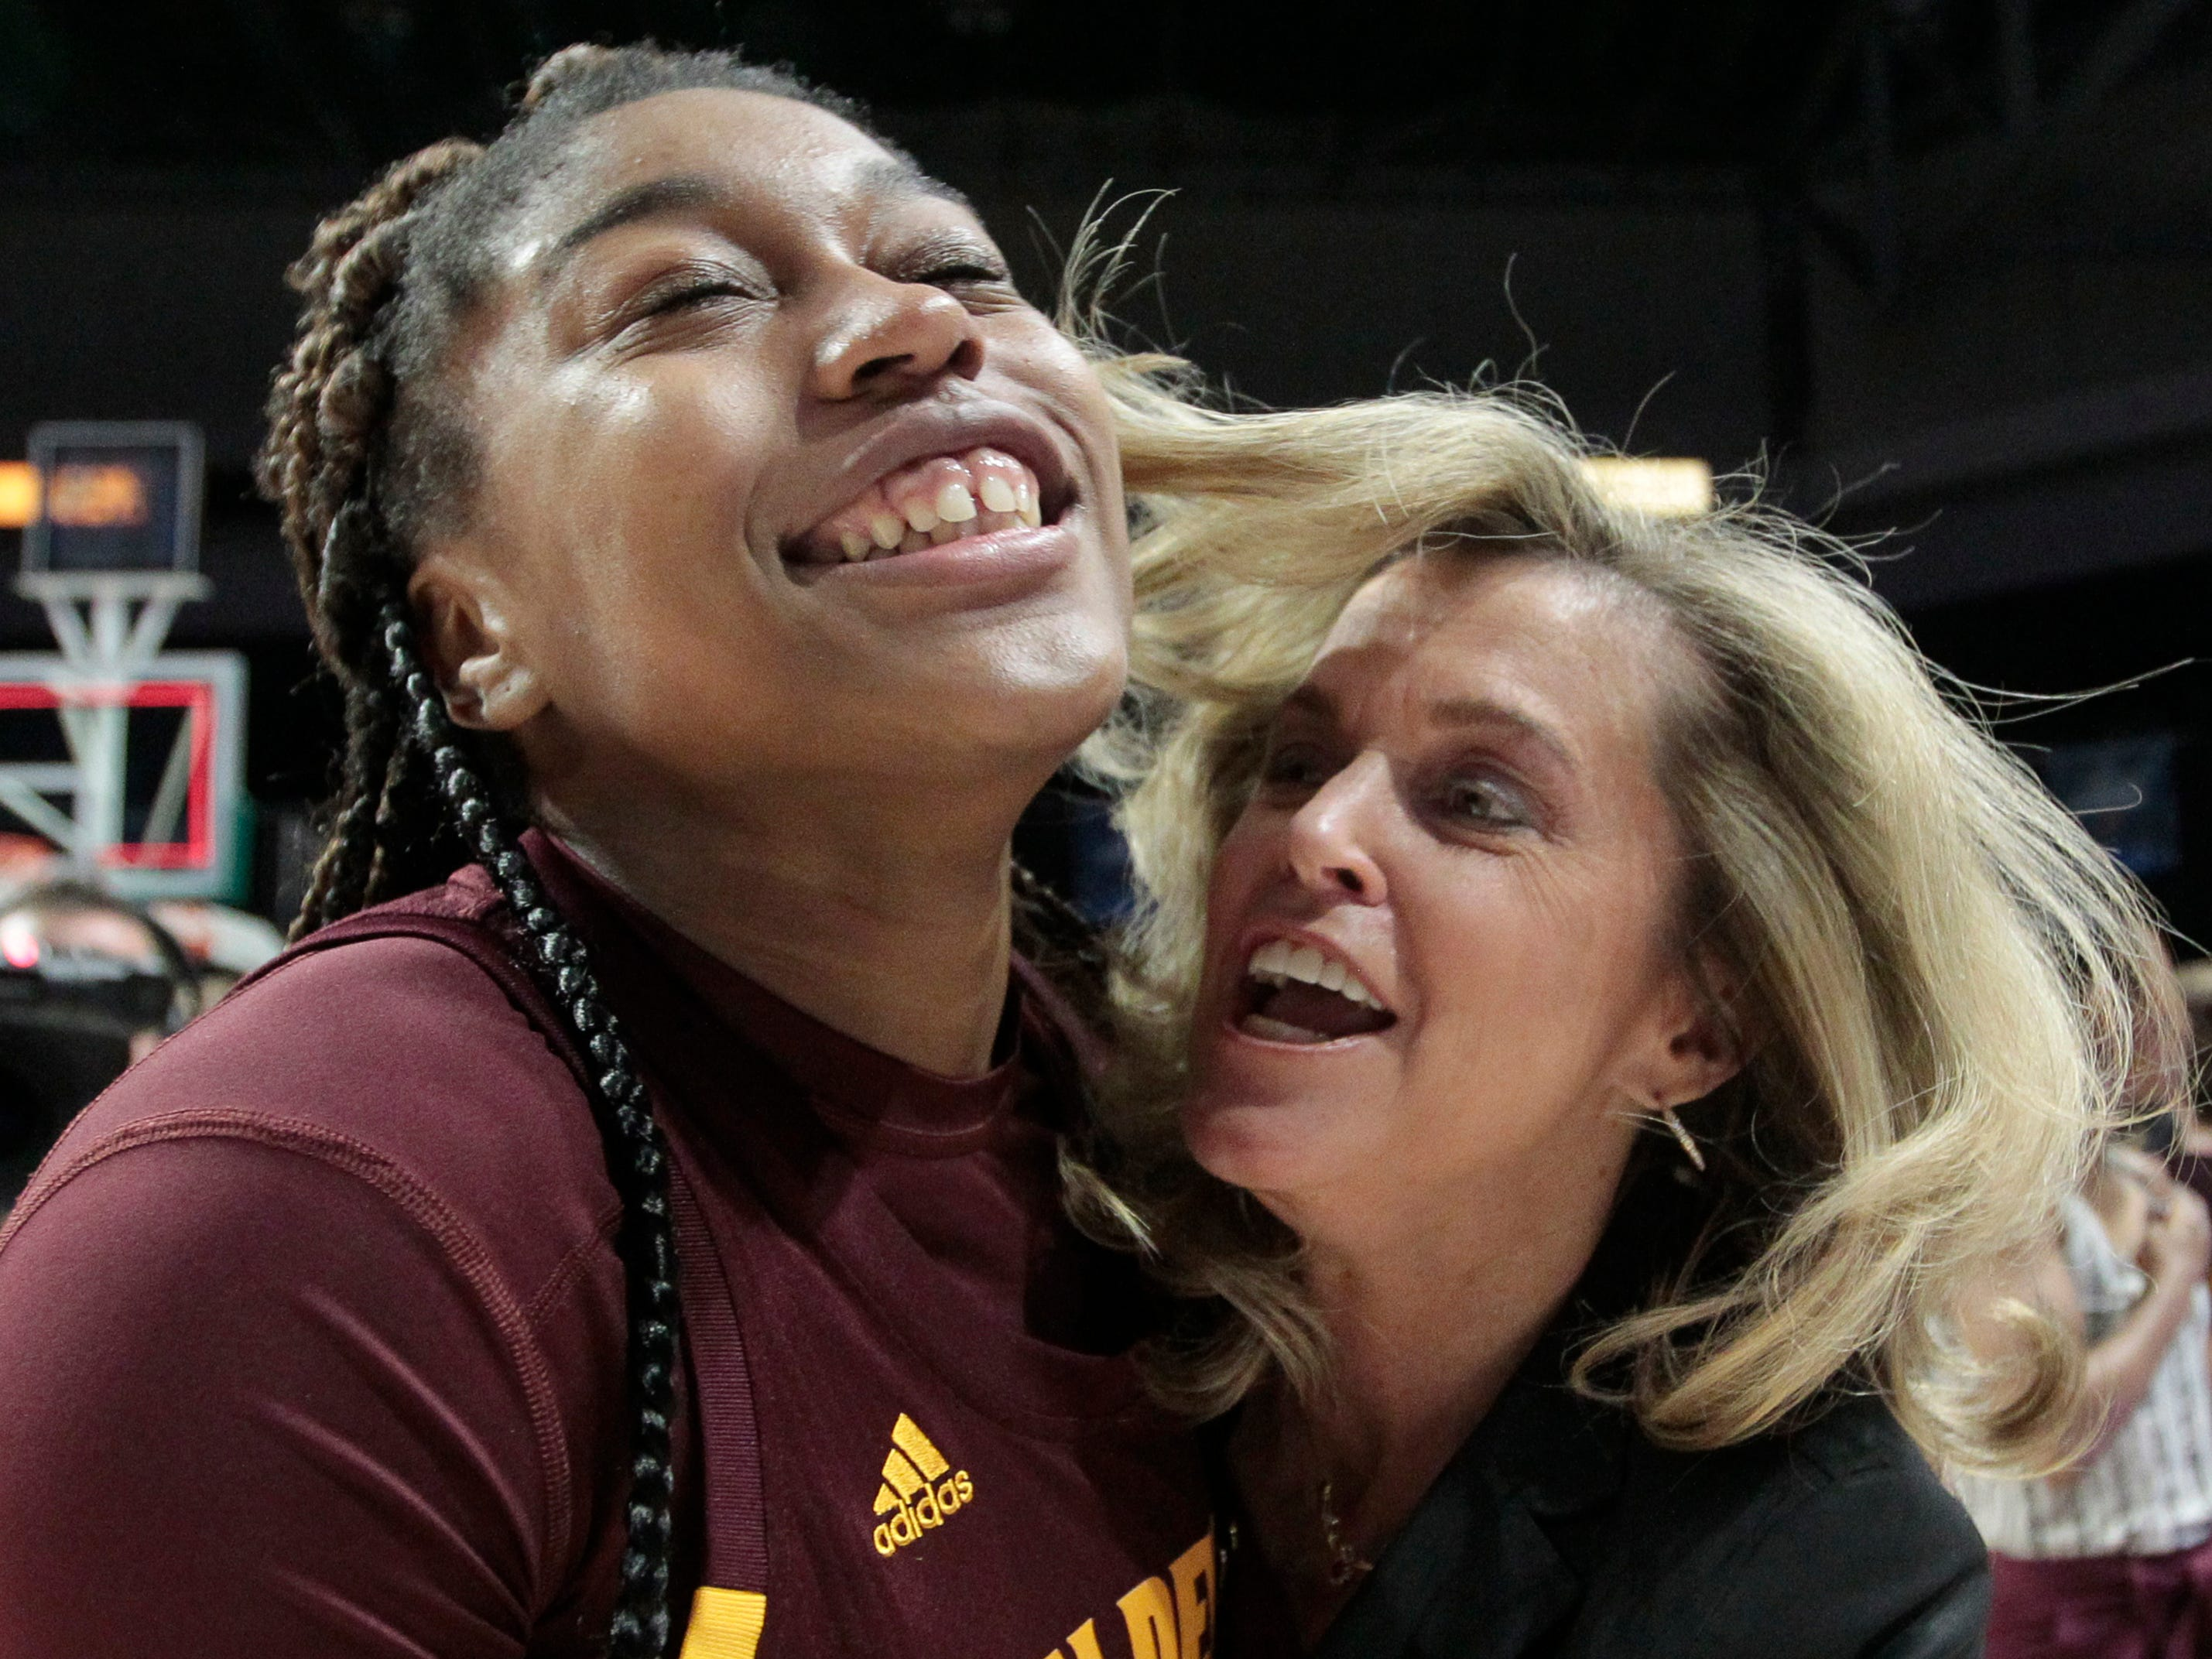 Arizona State's Bre'yanna Sanders, left, hugs coach Charli Turner Thorne after the team's 57-55 win over Miami during a second-round women's college basketball game in the NCAA Tournament, Sunday, March 24, 2019, in Coral Gables, Fla. (AP Photo/Luis M. Alvarez)